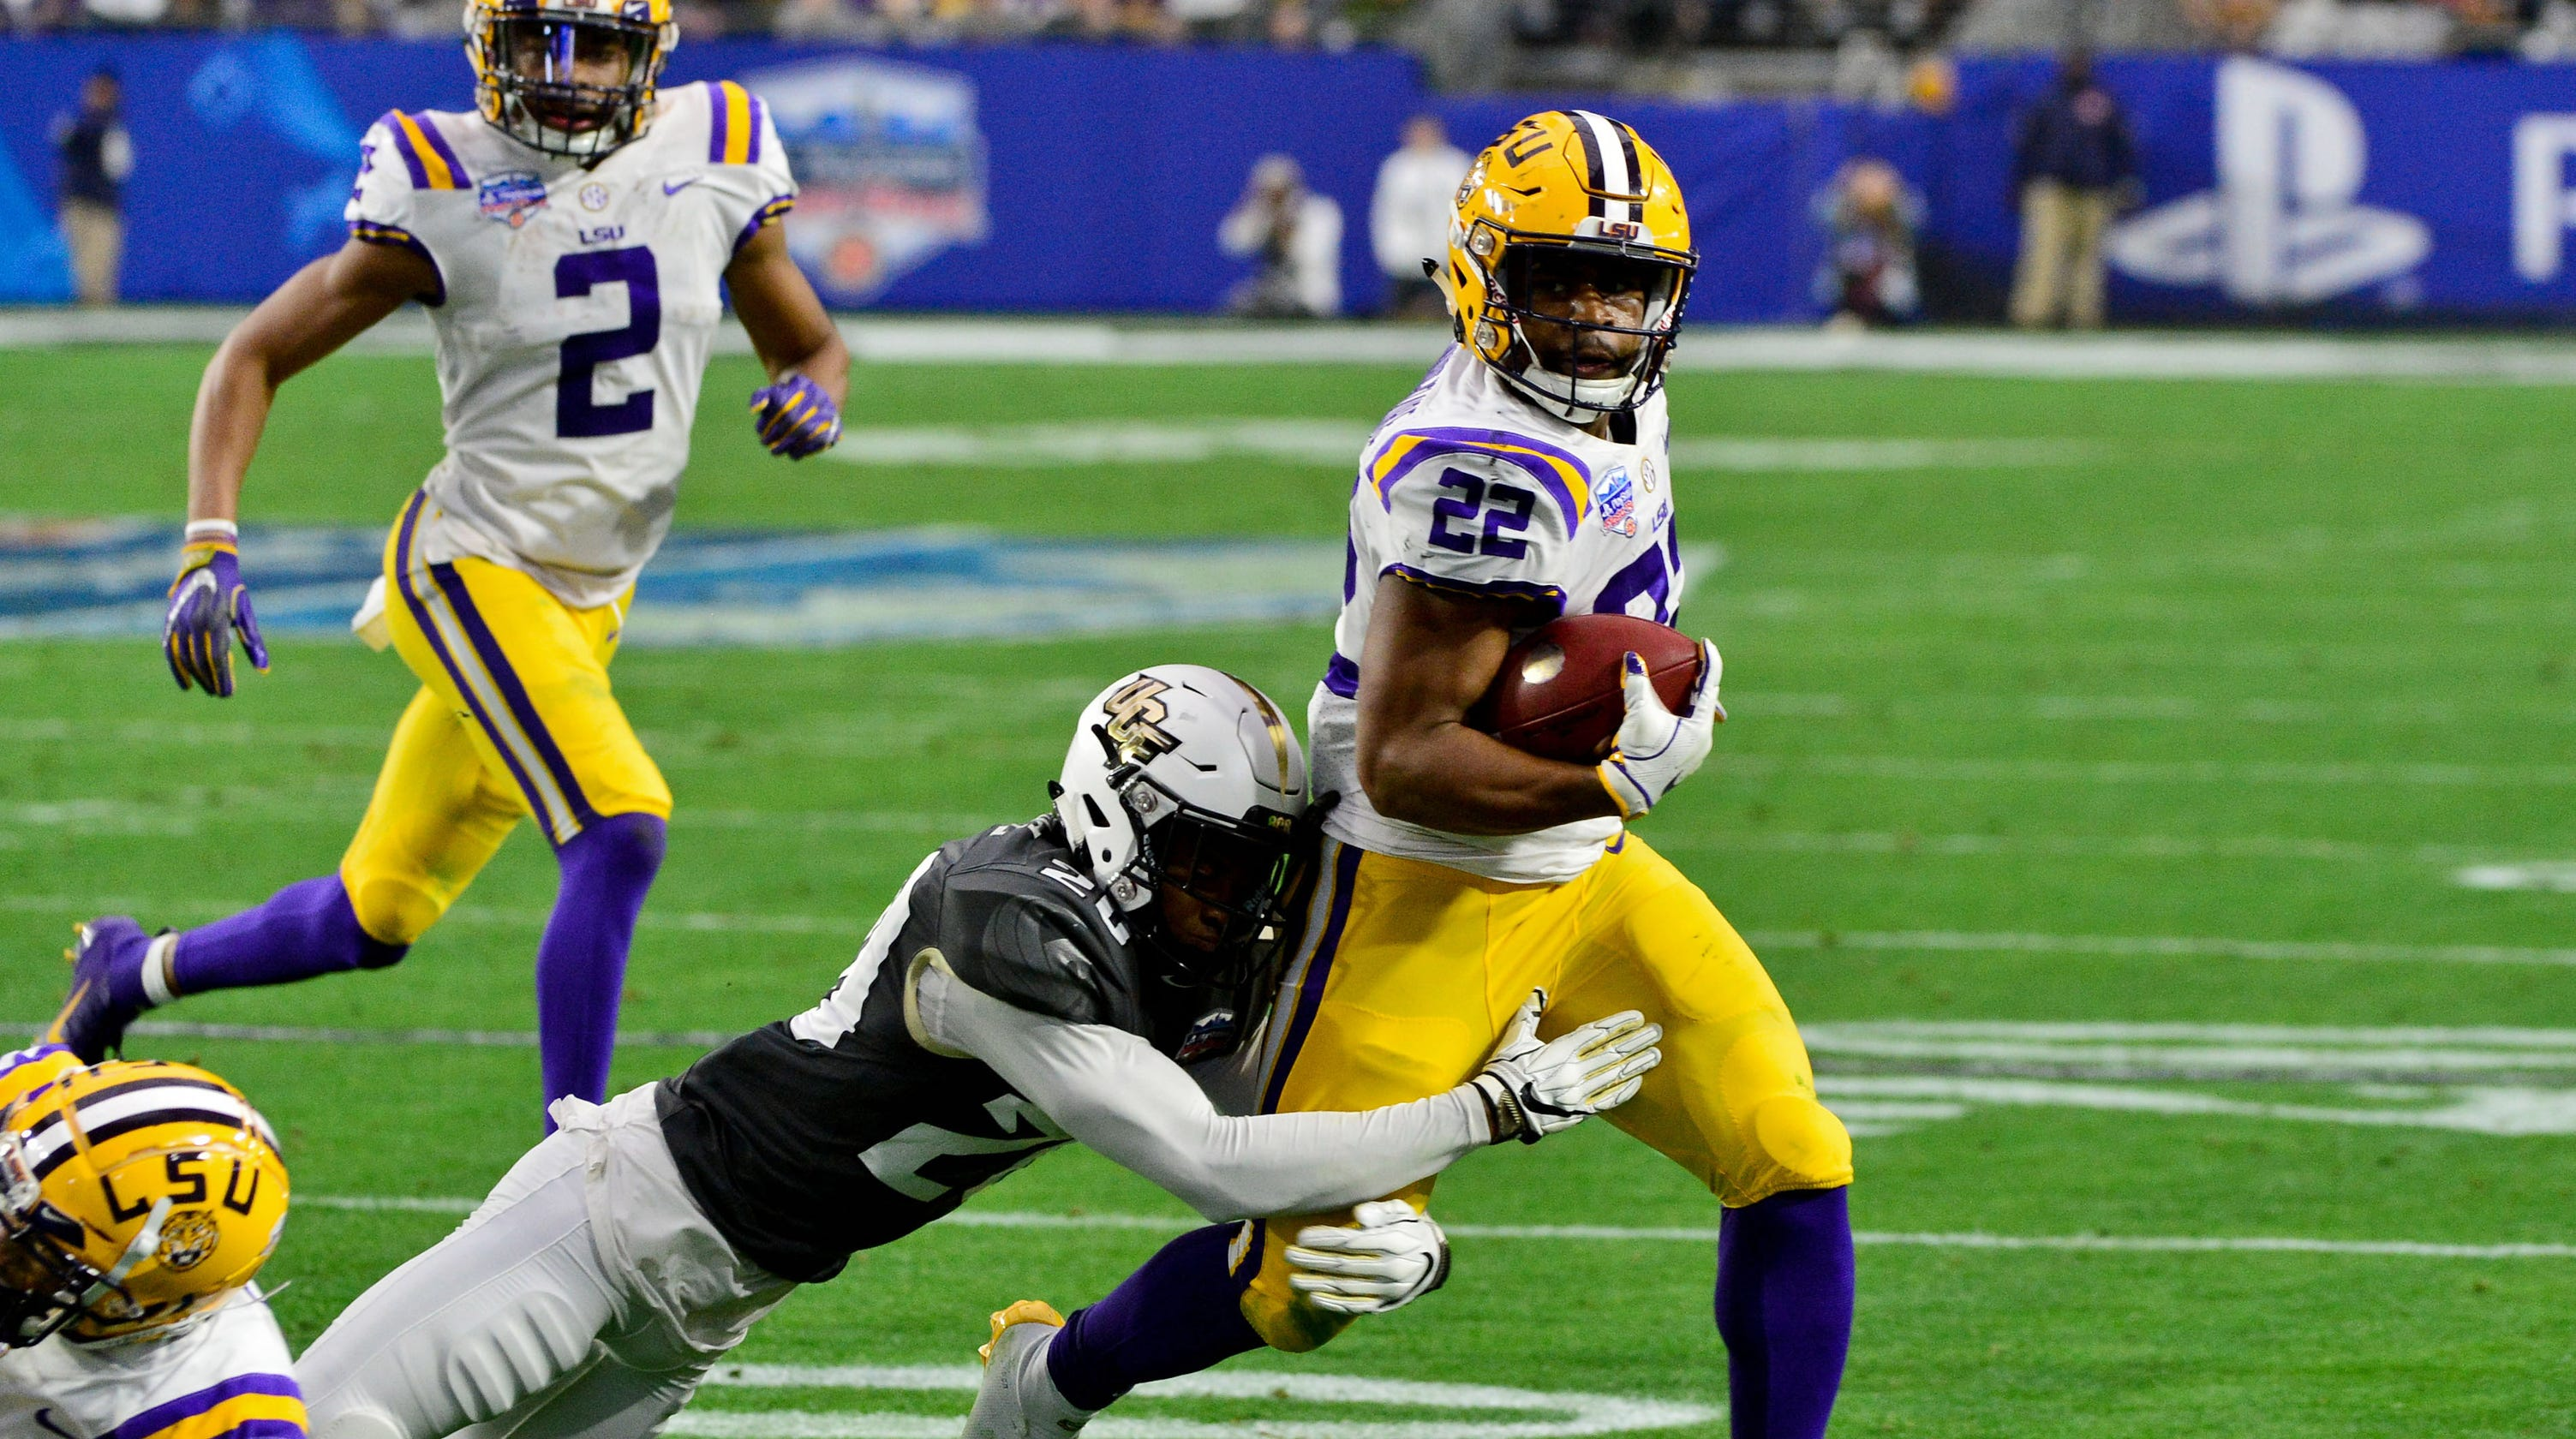 2019 LSU Football Schedule: Dates, Times, TV assignments